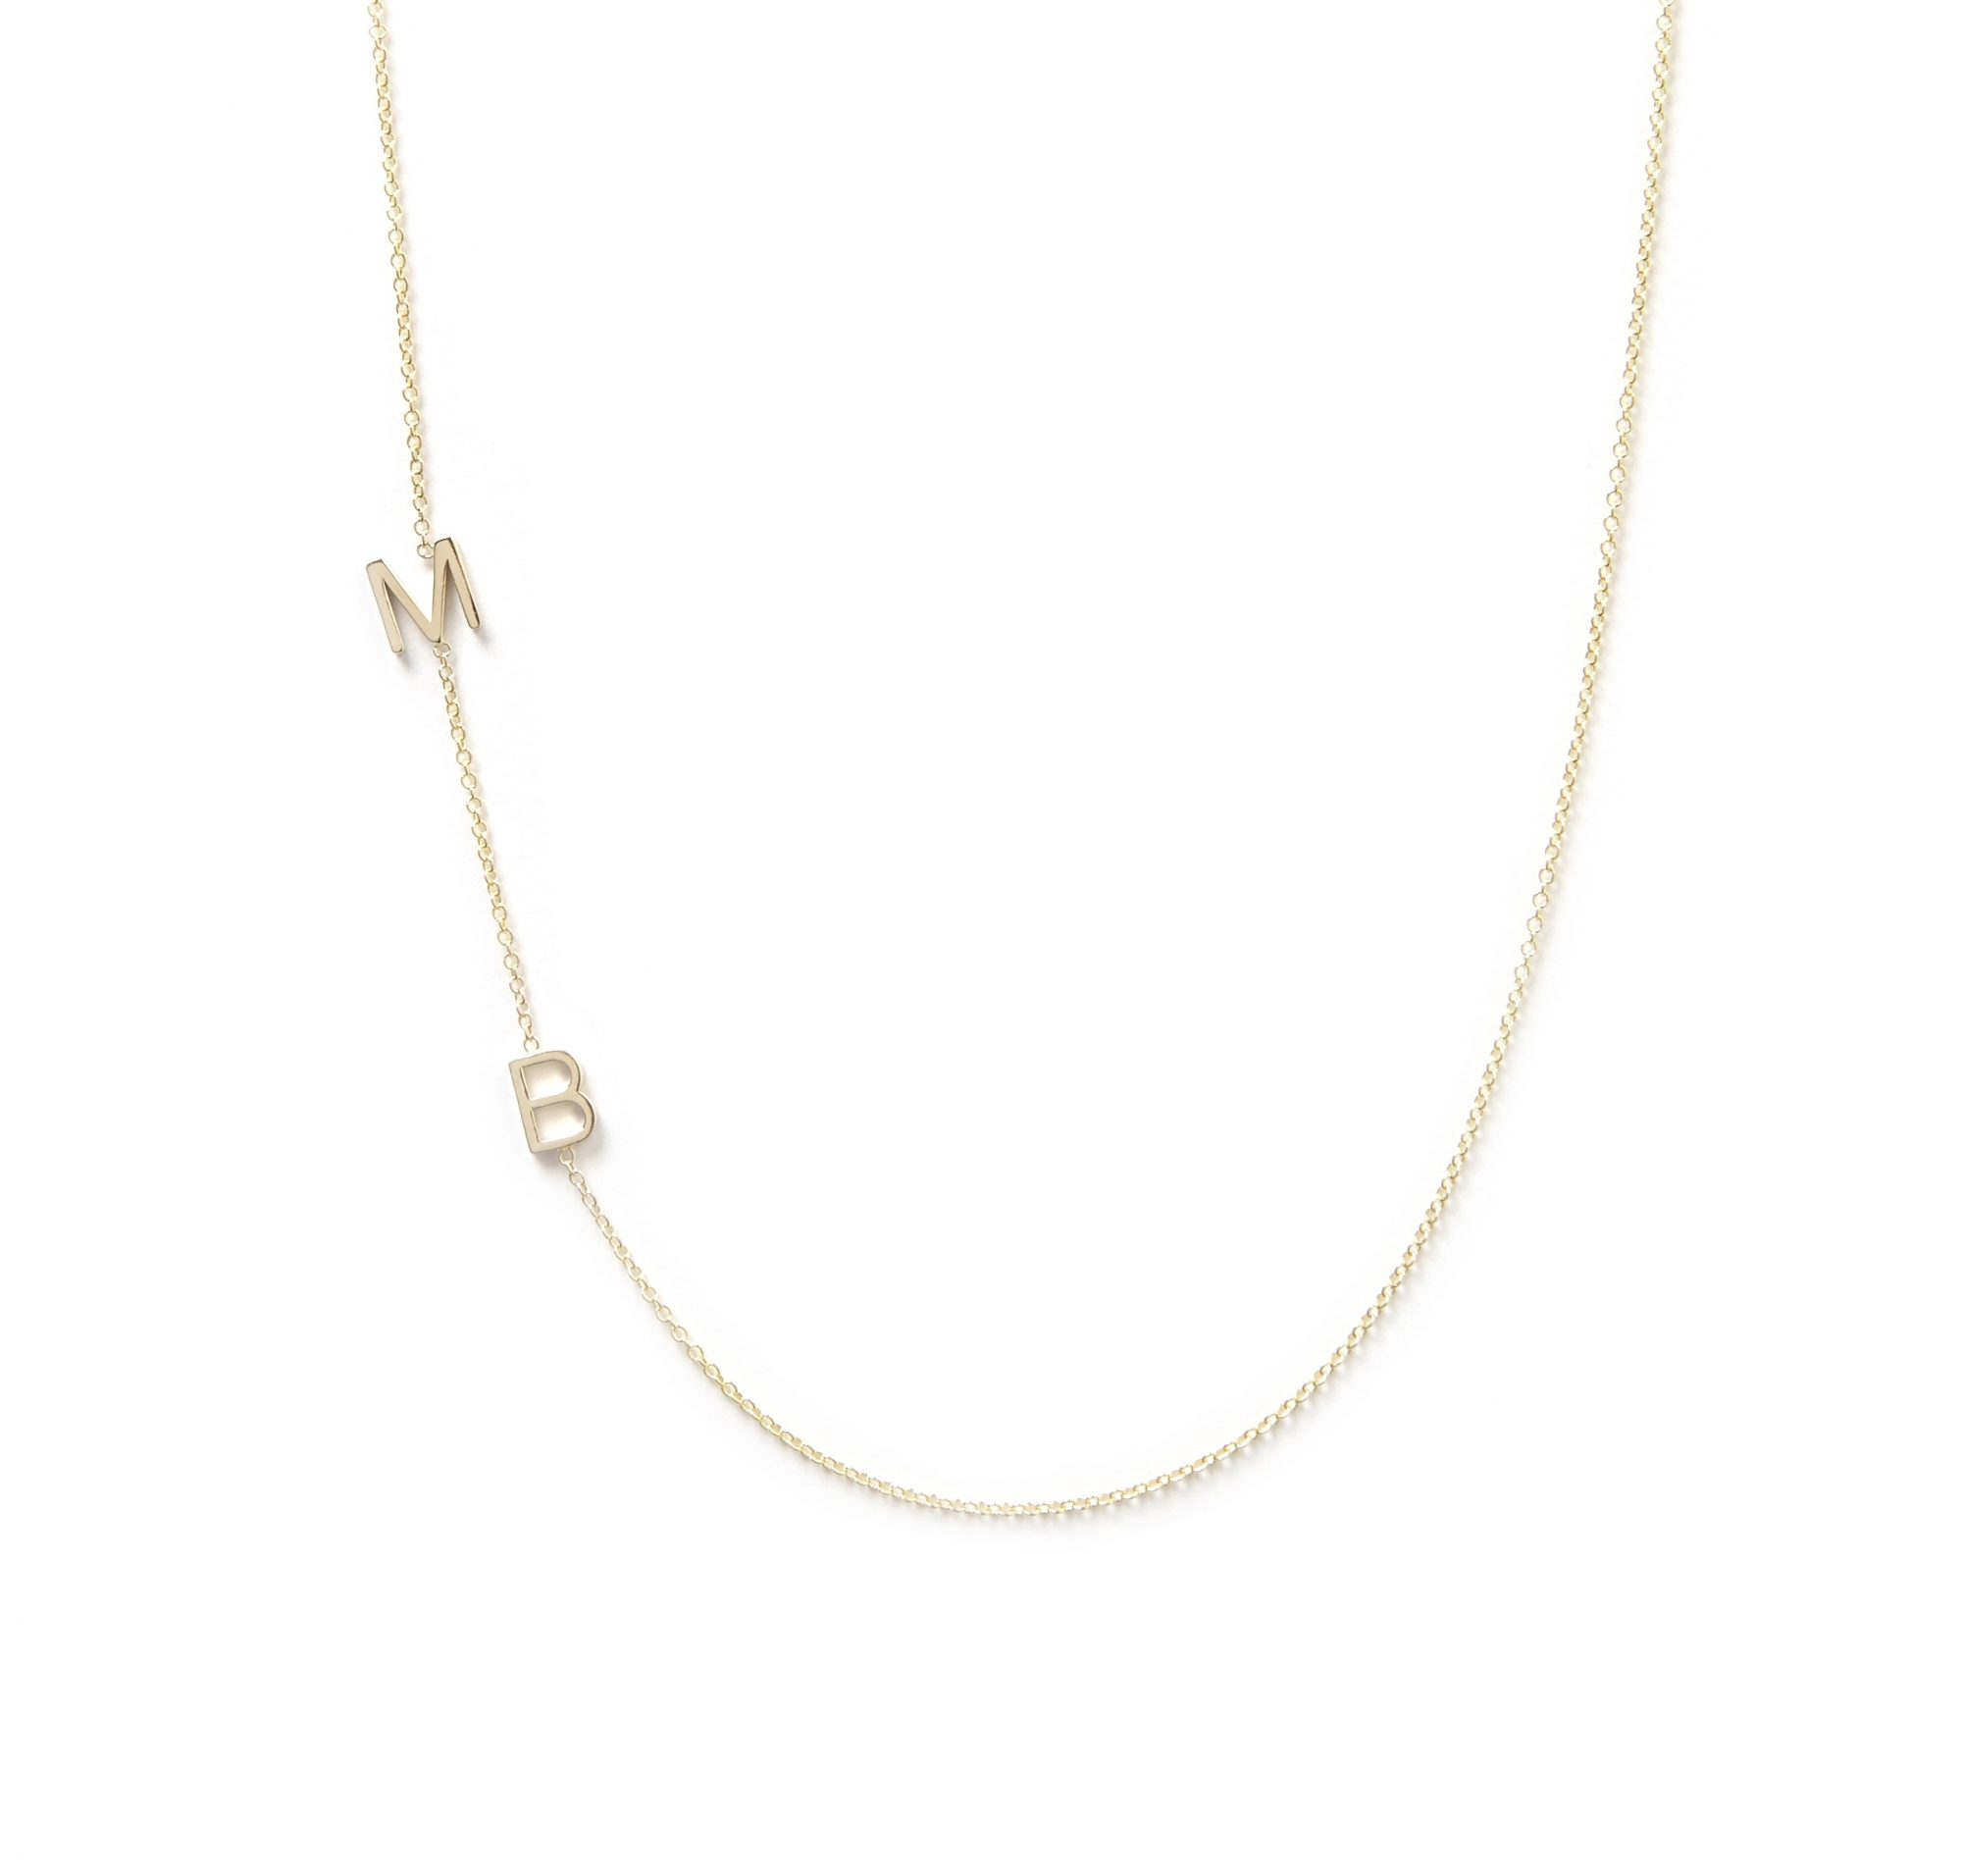 2-letter-mb-necklace-yellowgold_whitebg1